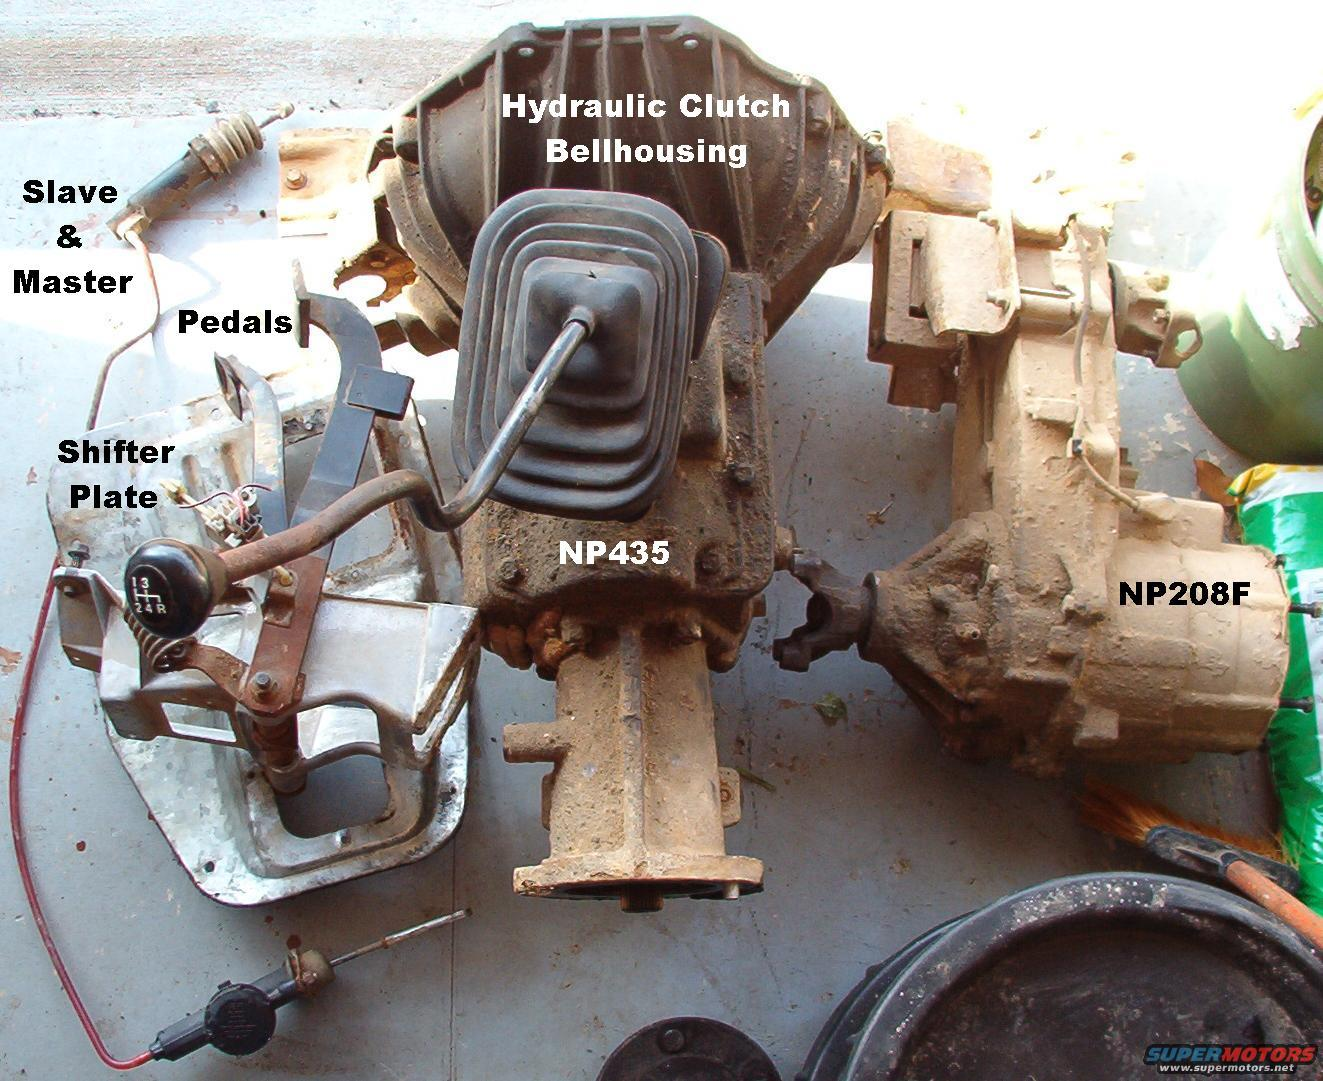 What Is Transmission >> 1983 Ford Bronco Hydraulic Clutch picture | SuperMotors.net